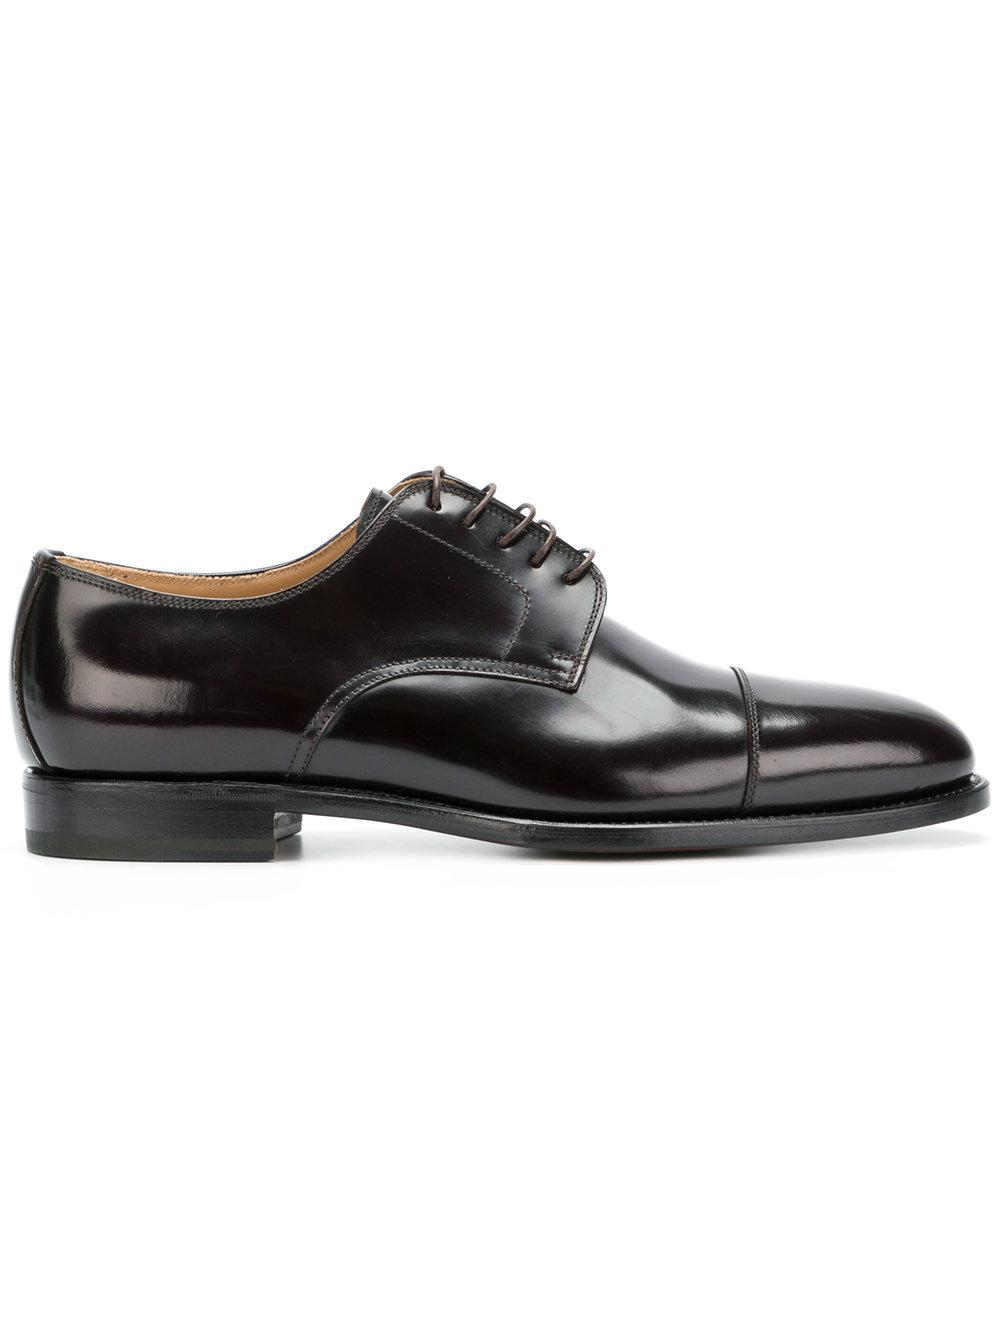 Kiton Classic Derby Shoes - Brown